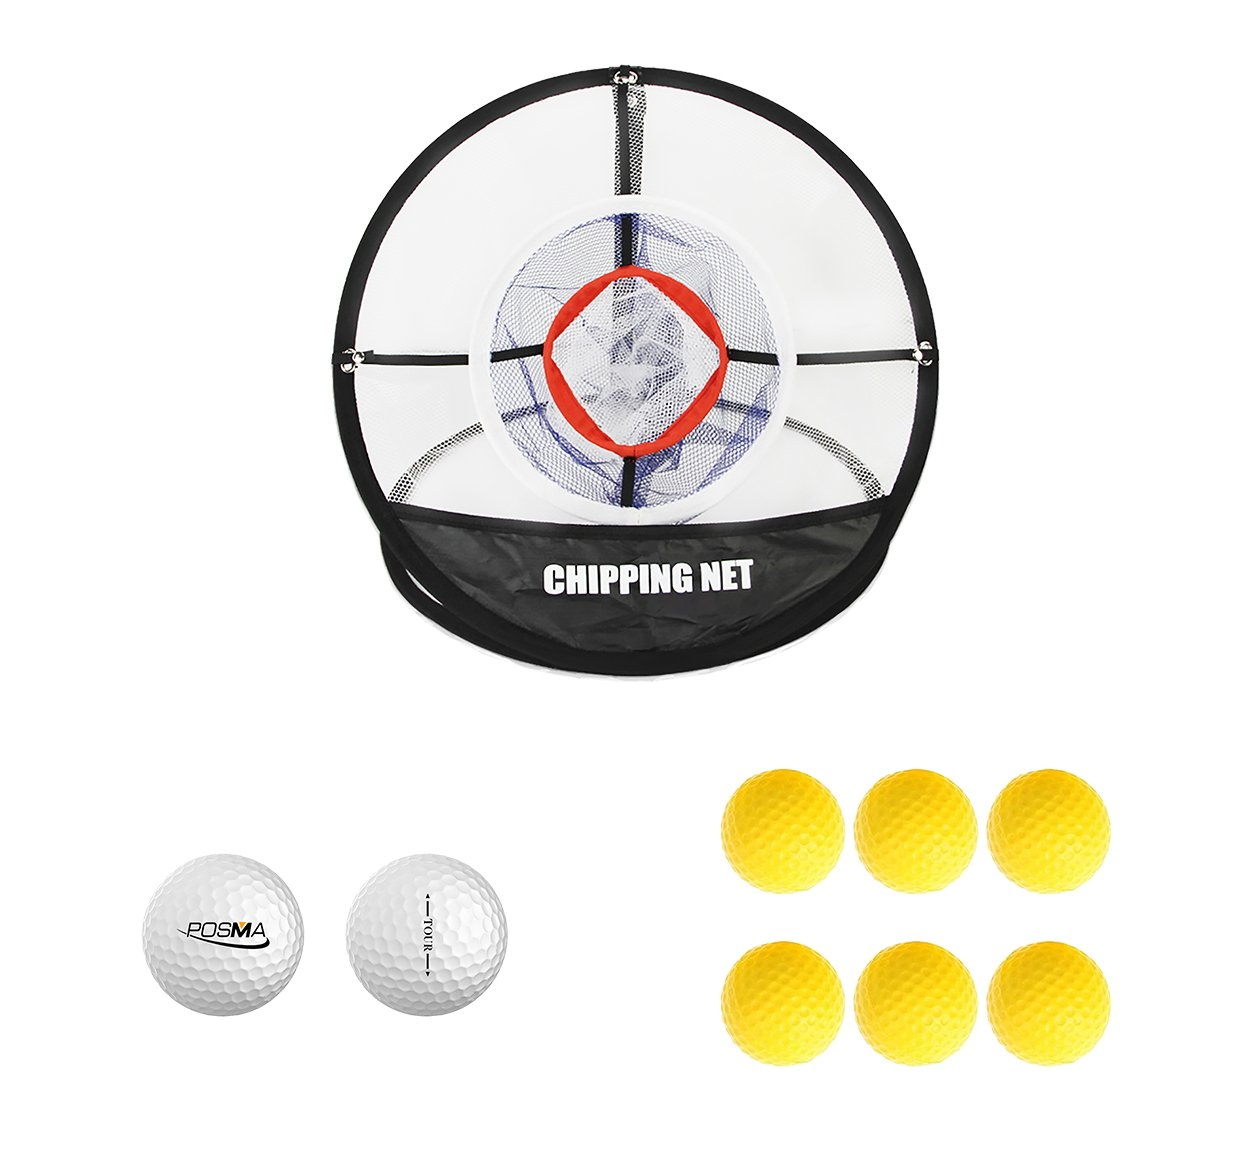 POSMA CN010A Portable Golf Training Chipping Net Bundle set with 1pc Hitting Aid Practice In/Outdoor Bag Hitting Nets + 2pcs Golf tour ball + 6pcs Golf PU ball by POSMA (Image #1)